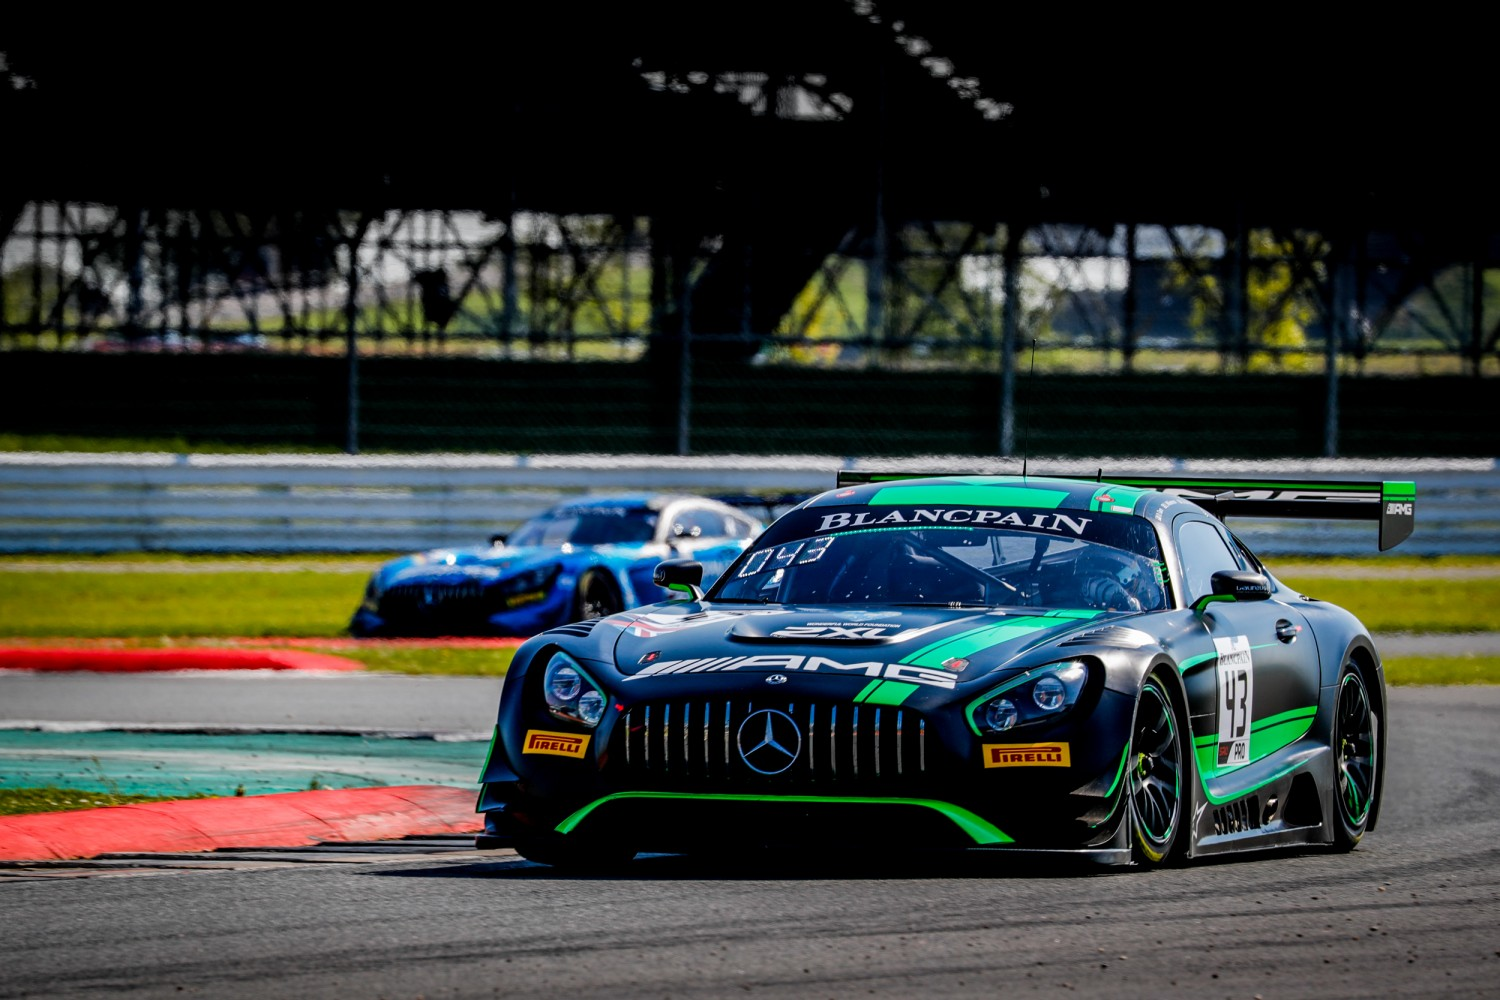 #43 Strakka Racing GBR Mercedes-AMG GT3 Jack Hawksworth GBR Dev Gore USA Lewis Williamson GBR -, Qualifying  | Jules_Benichou